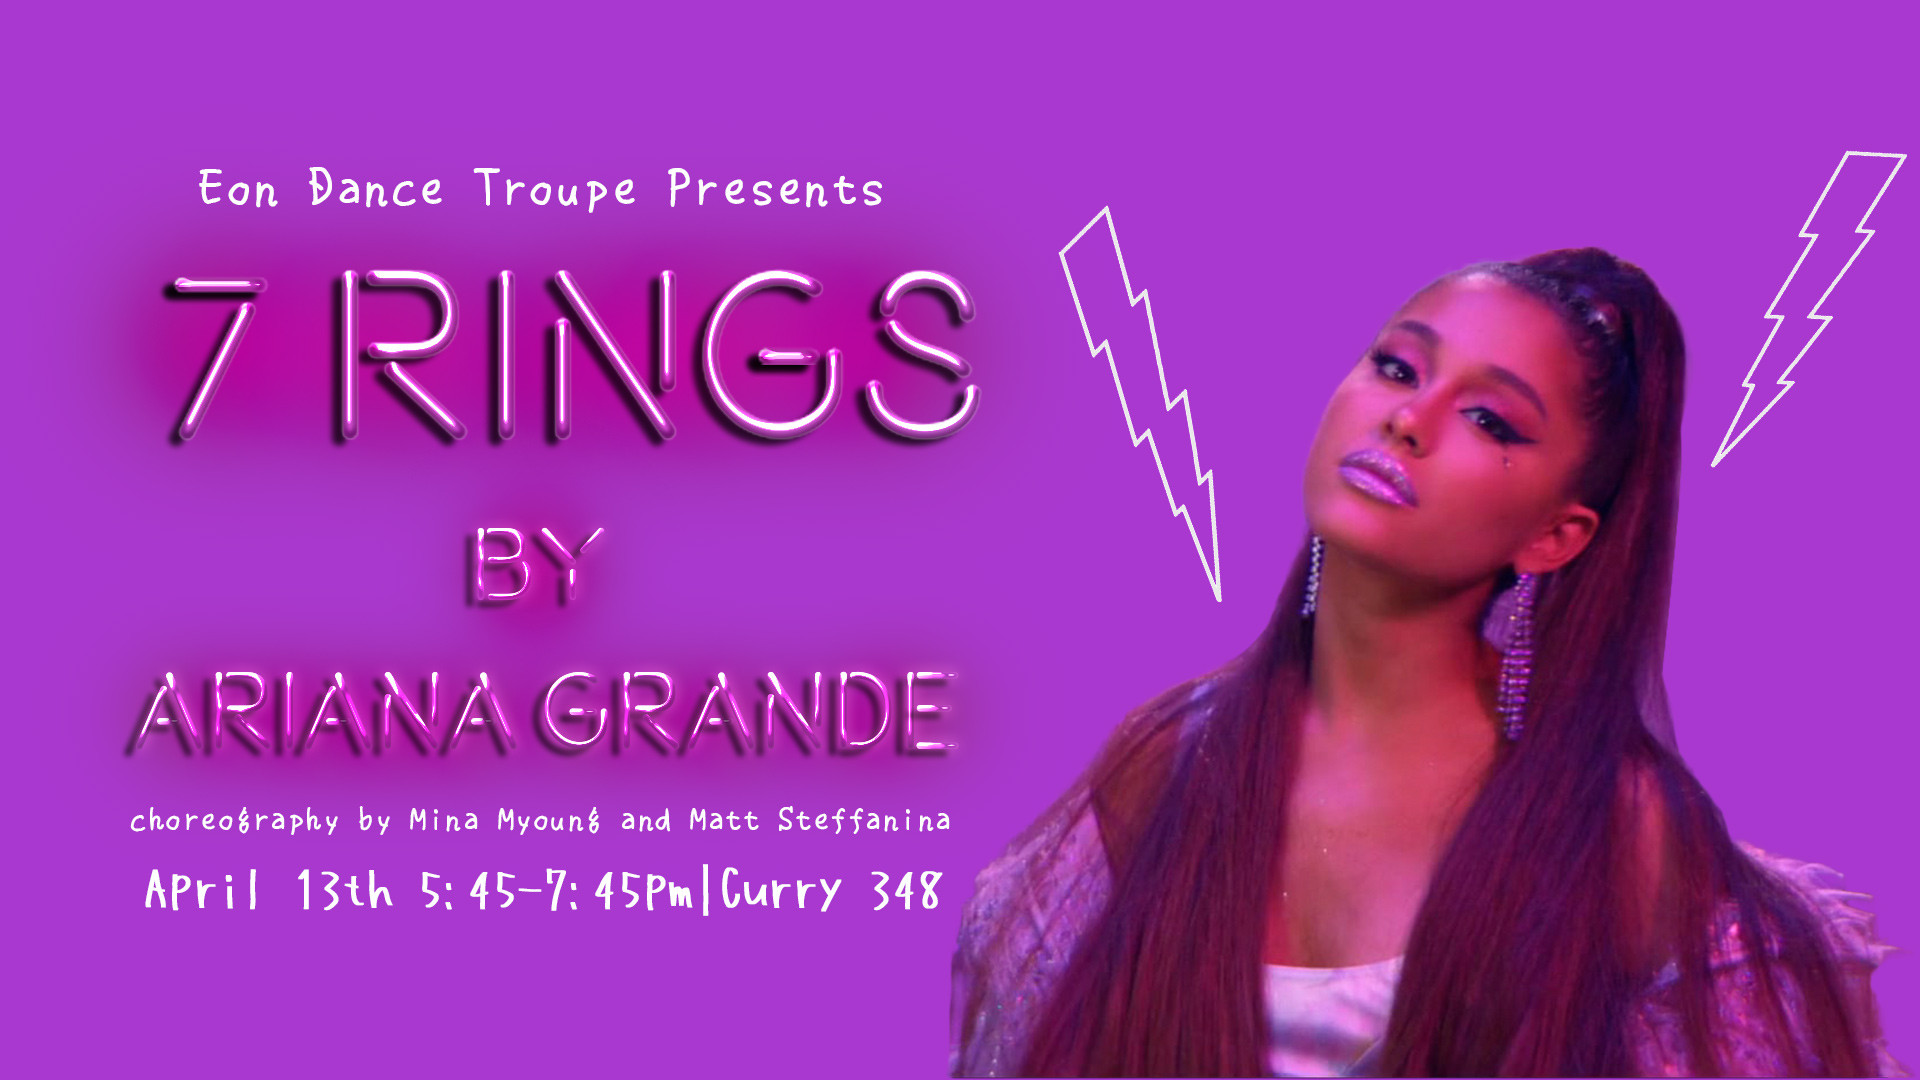 Eon Dance Troupe Workshop: 7 Rings by Ariana Grande